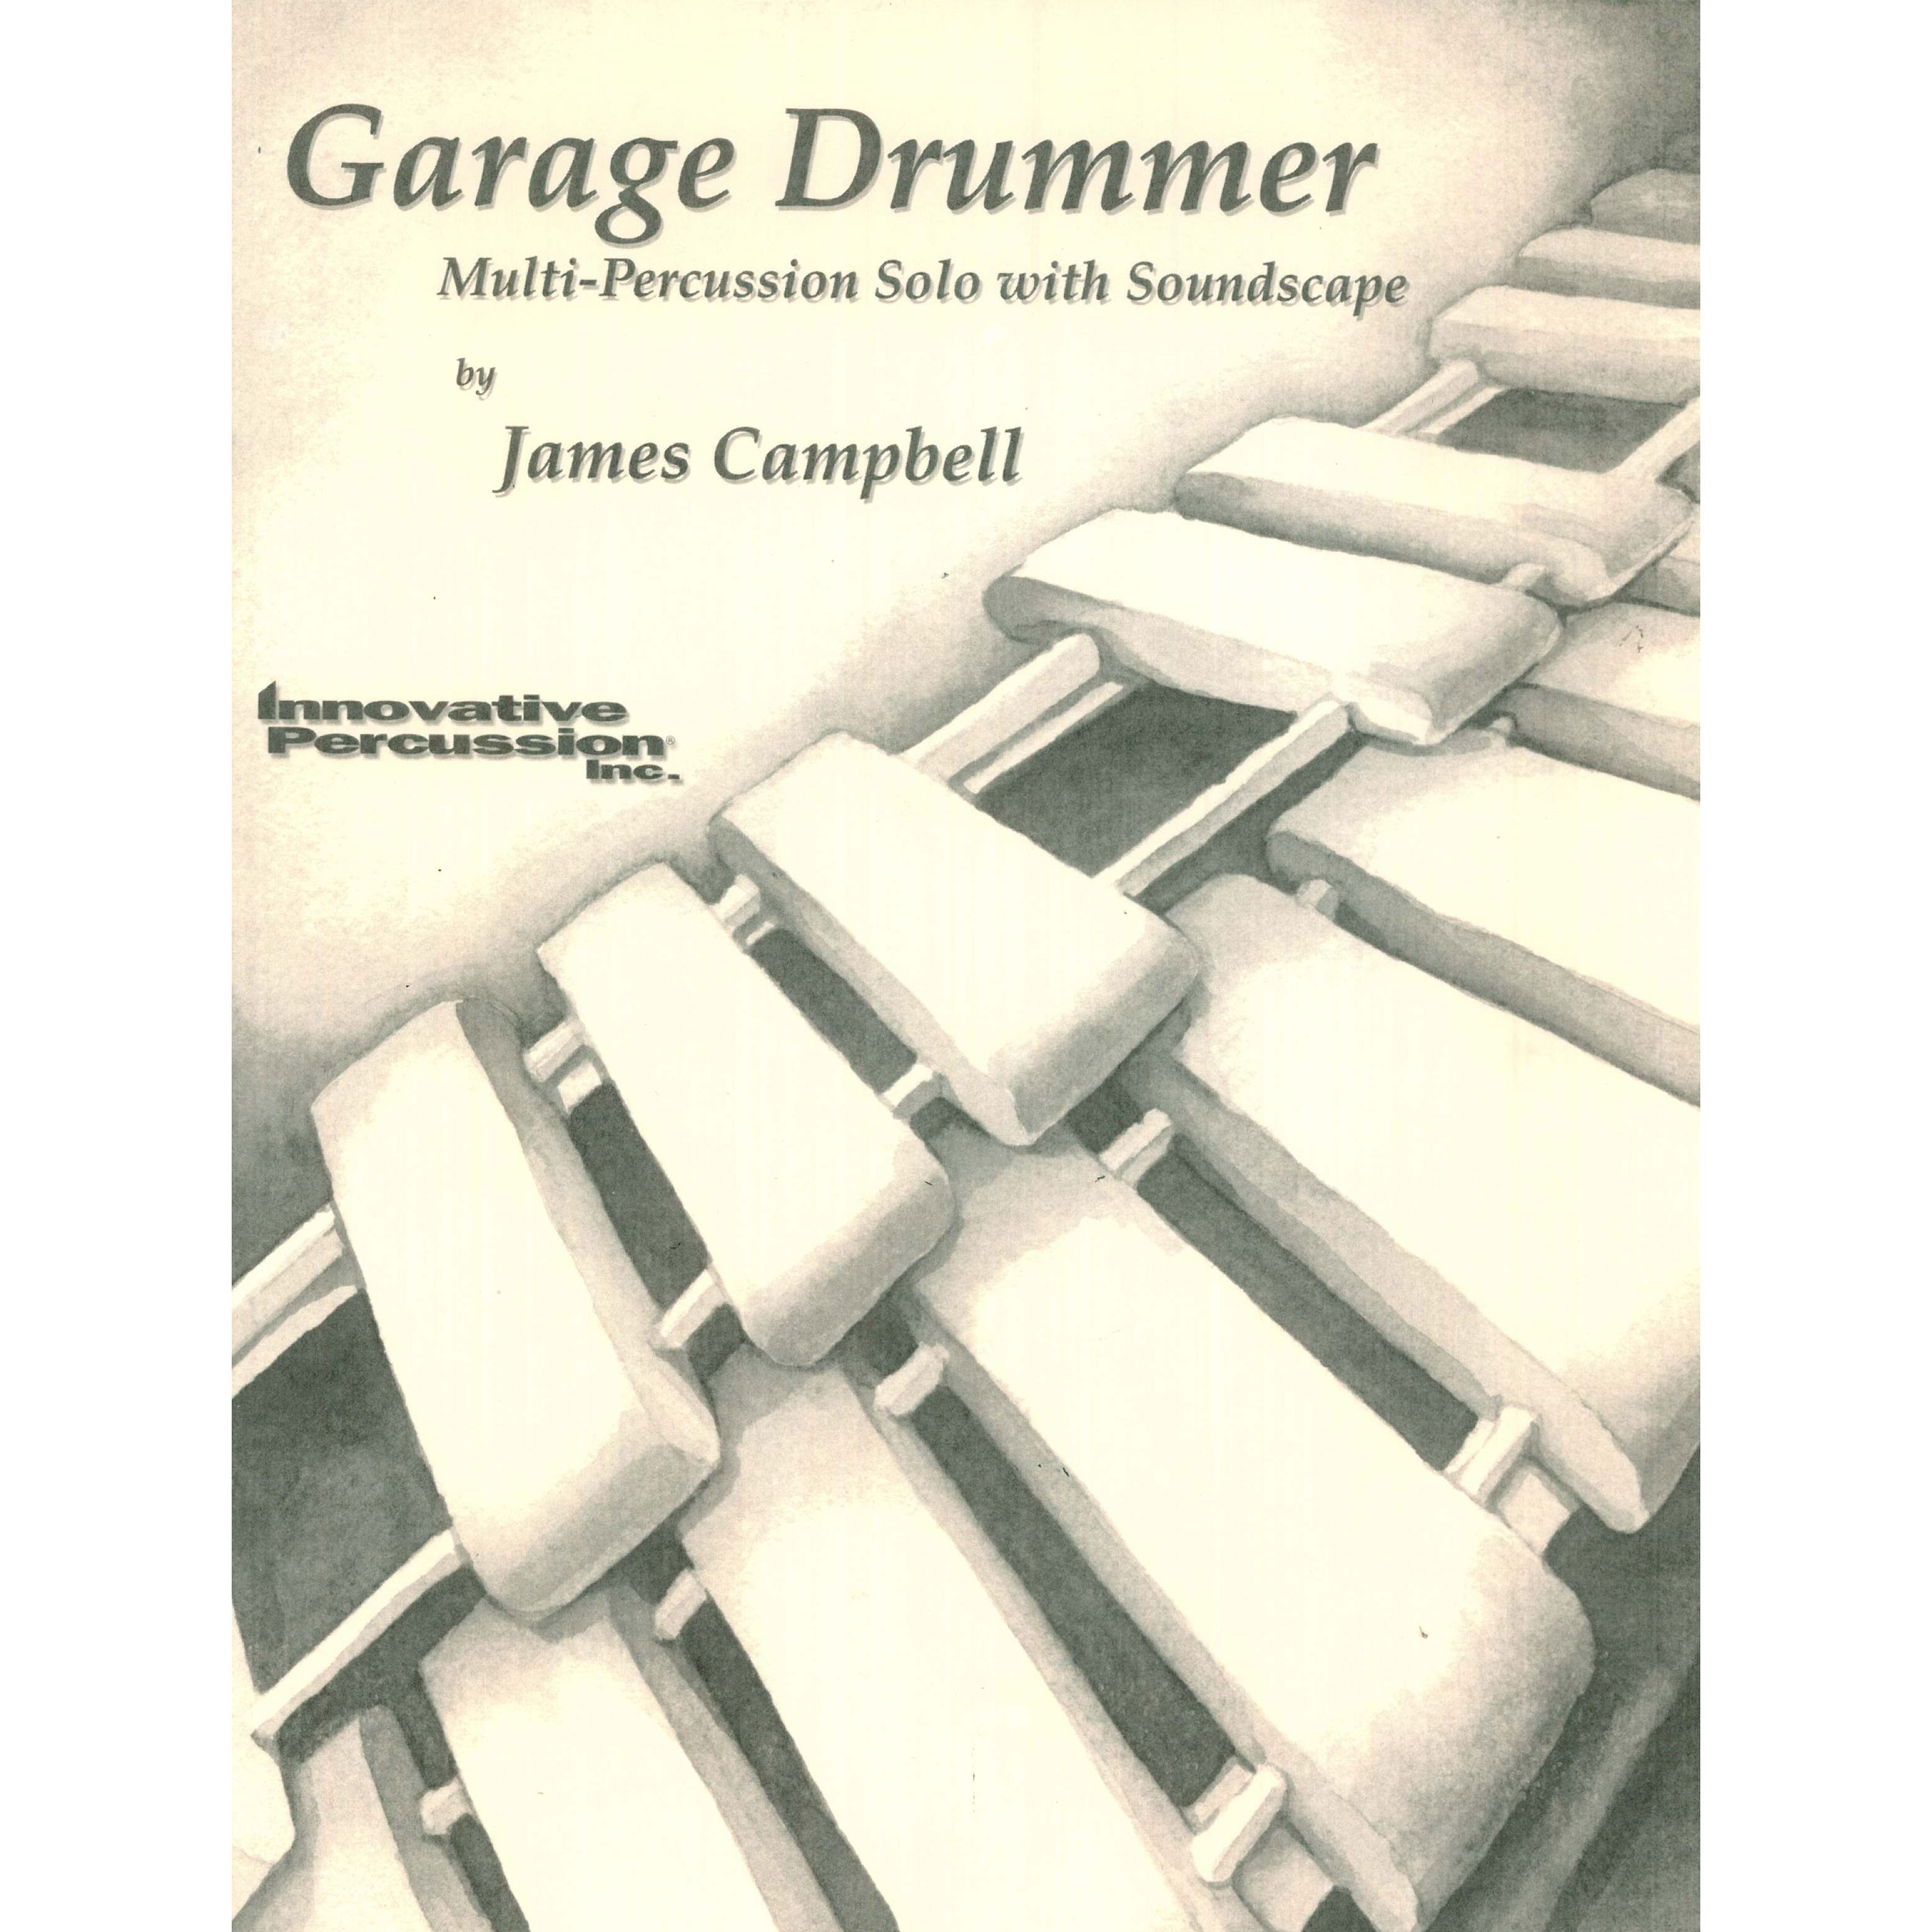 Garage Drummer (Percussion Ensemble Version) by James Campbell